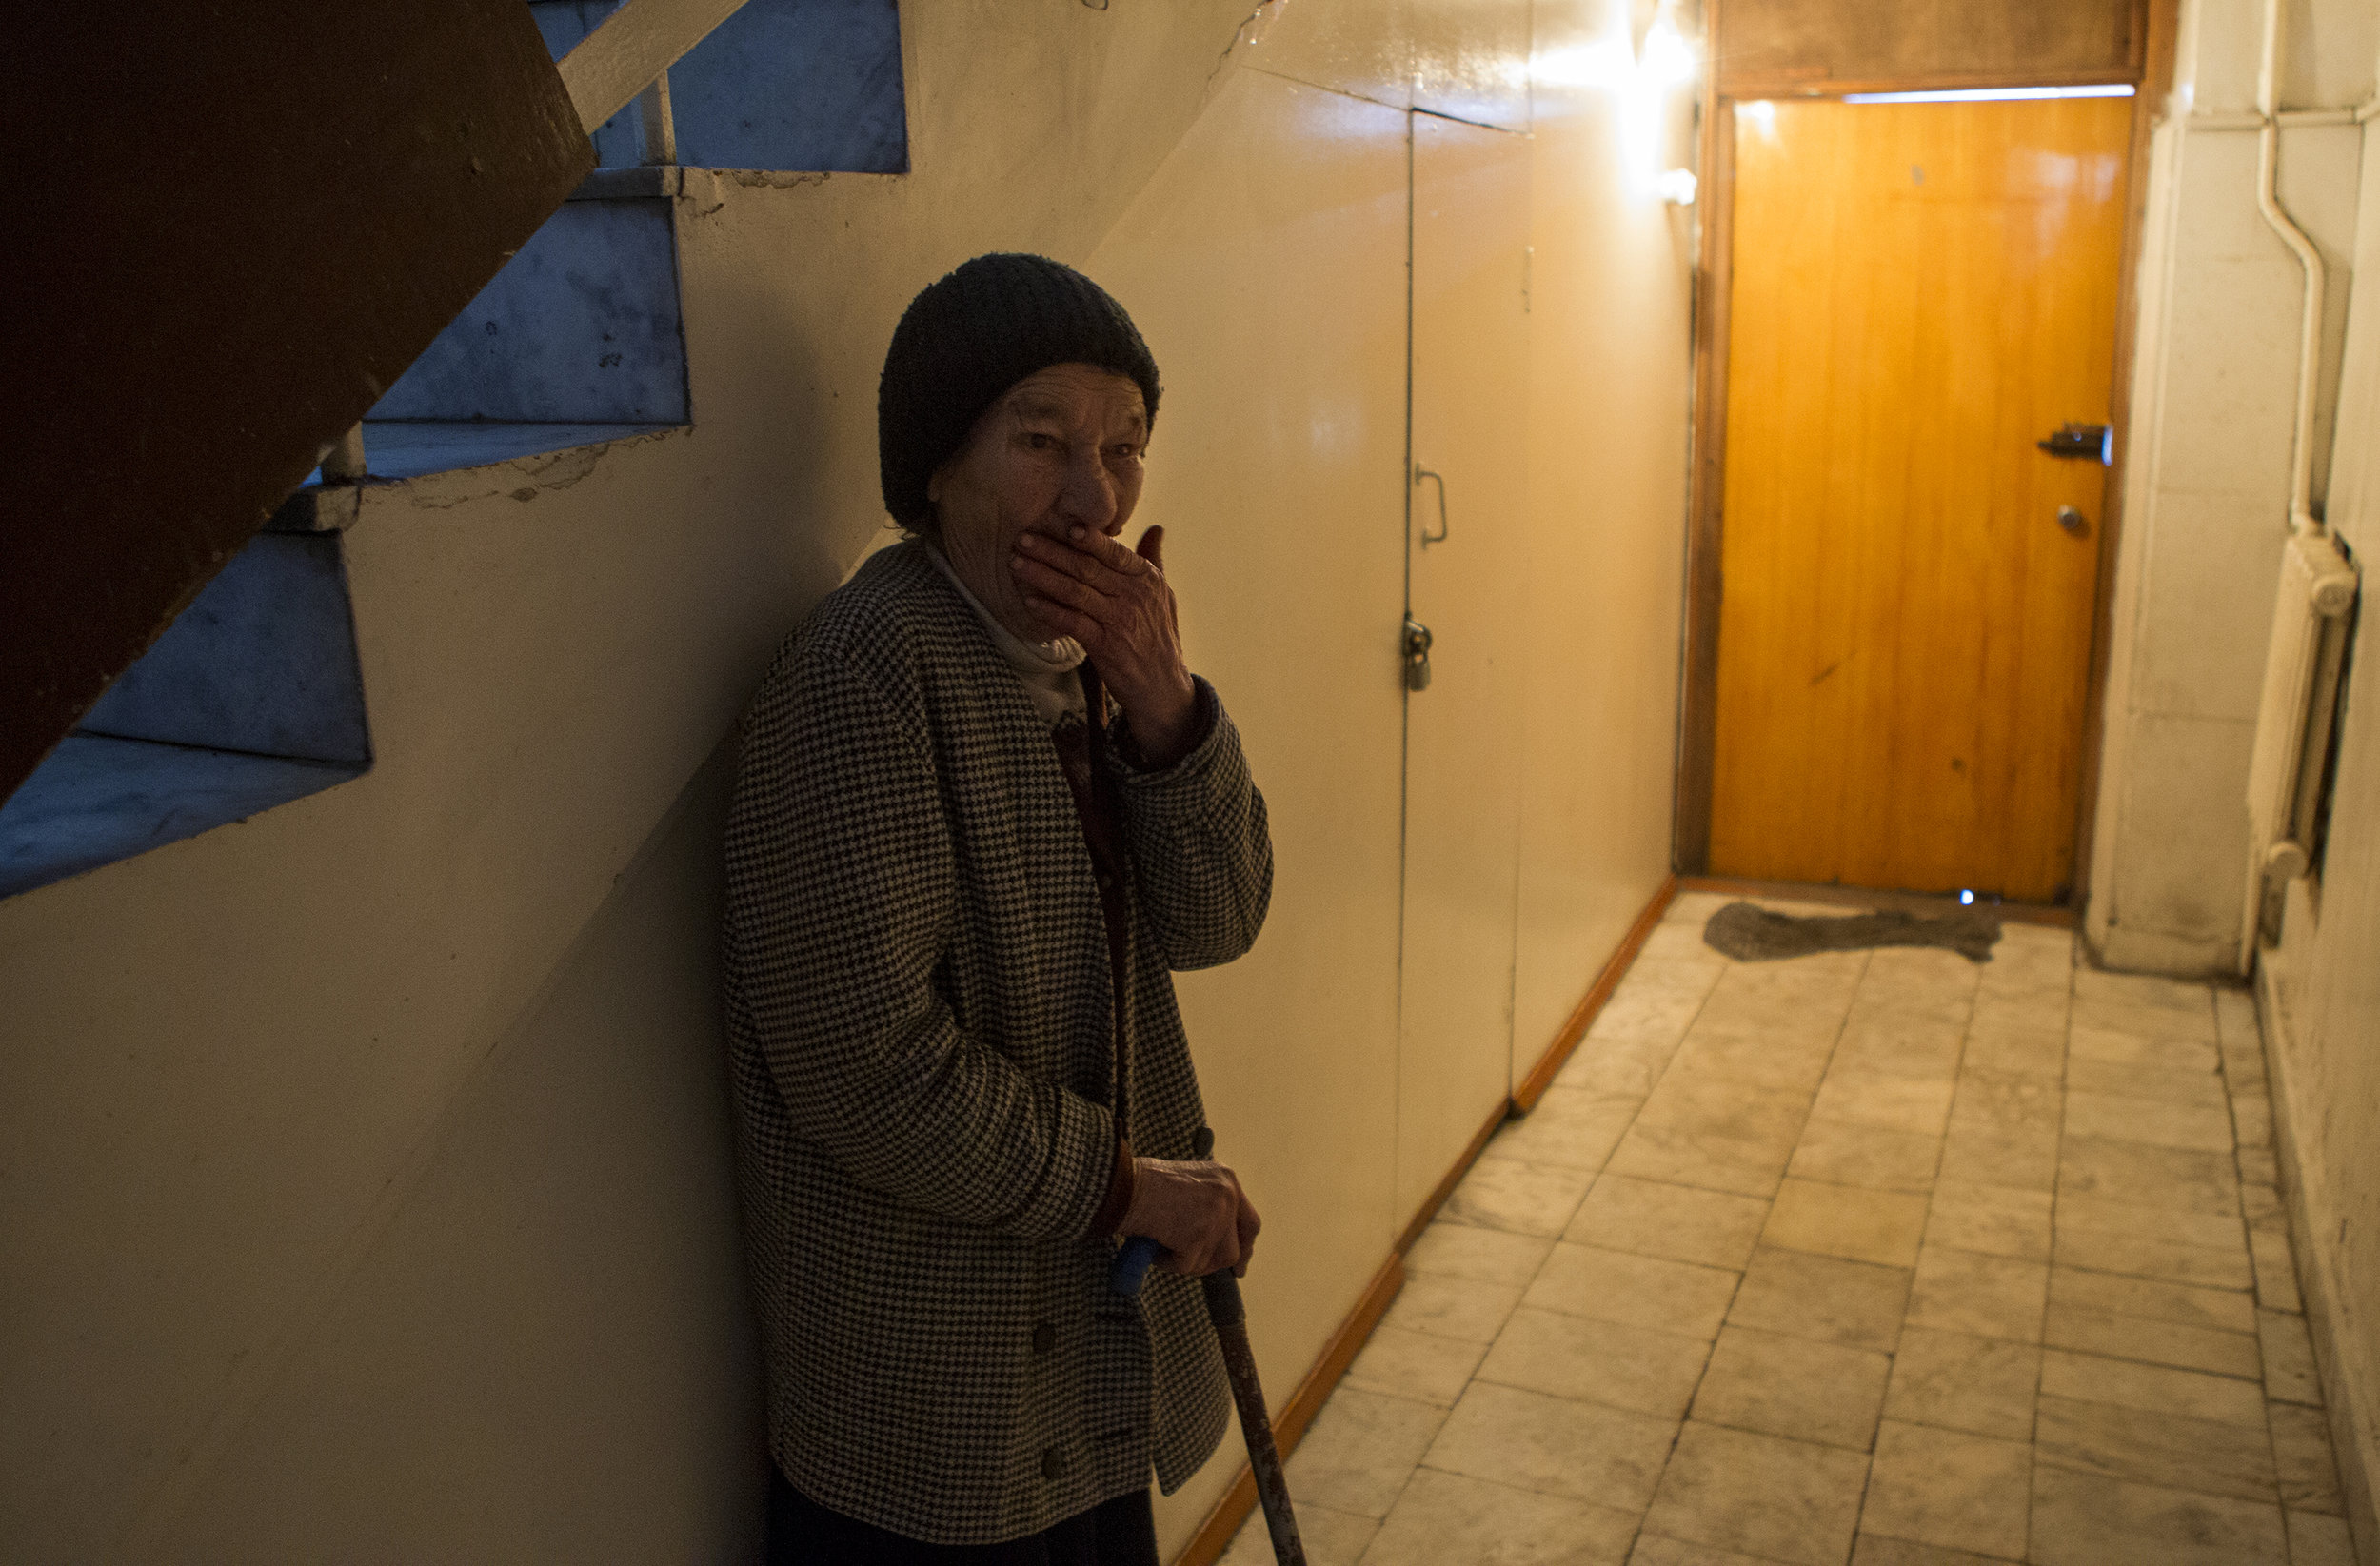 Tatiana Gerasimova, a blind homeless woman, stands in the hallway after lunch at the Kolotomto shelter in Bishkek. The Kolotomto shelter is one of the few places that the homeless can go for help in Bishkek.